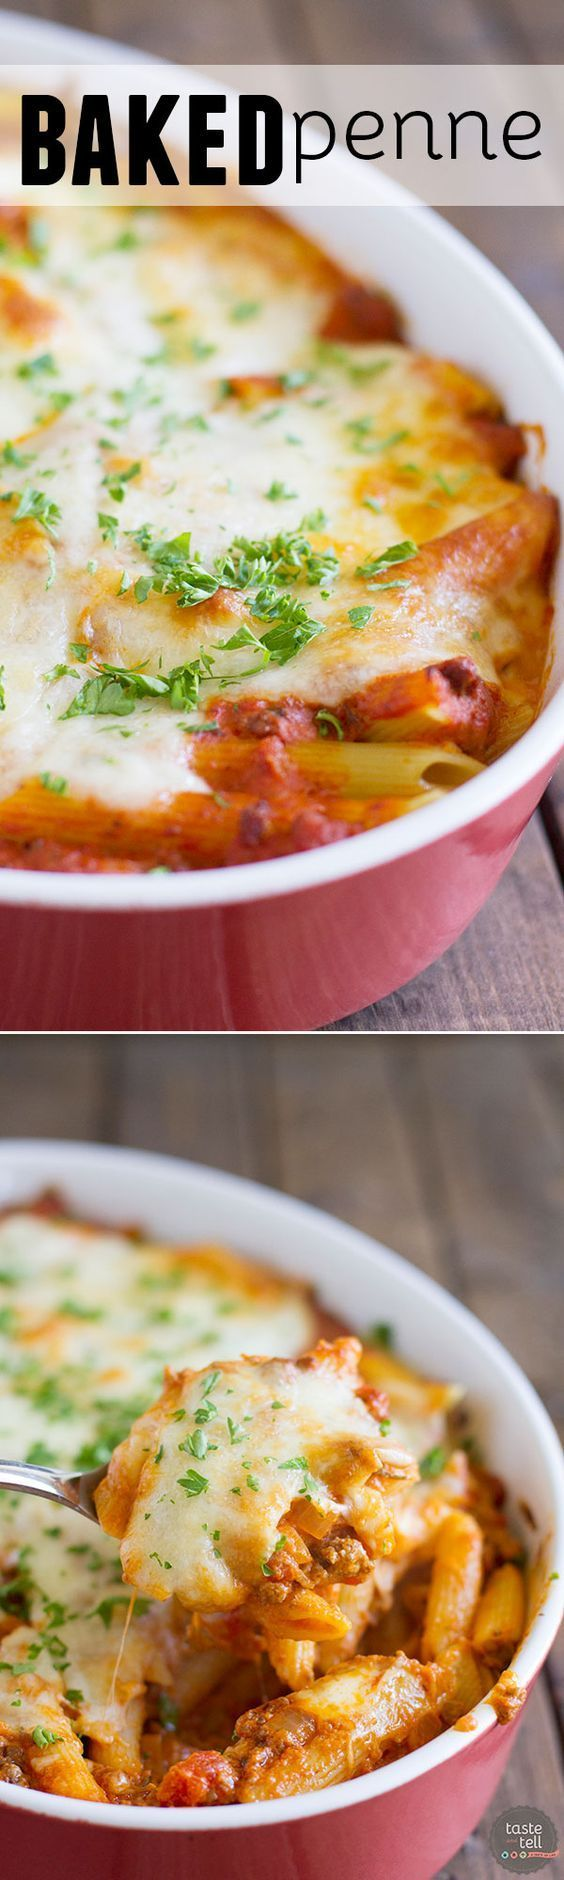 Pure comfort food, this Baked Penne has a meaty, creamy sauce and lots and lots of cheese.